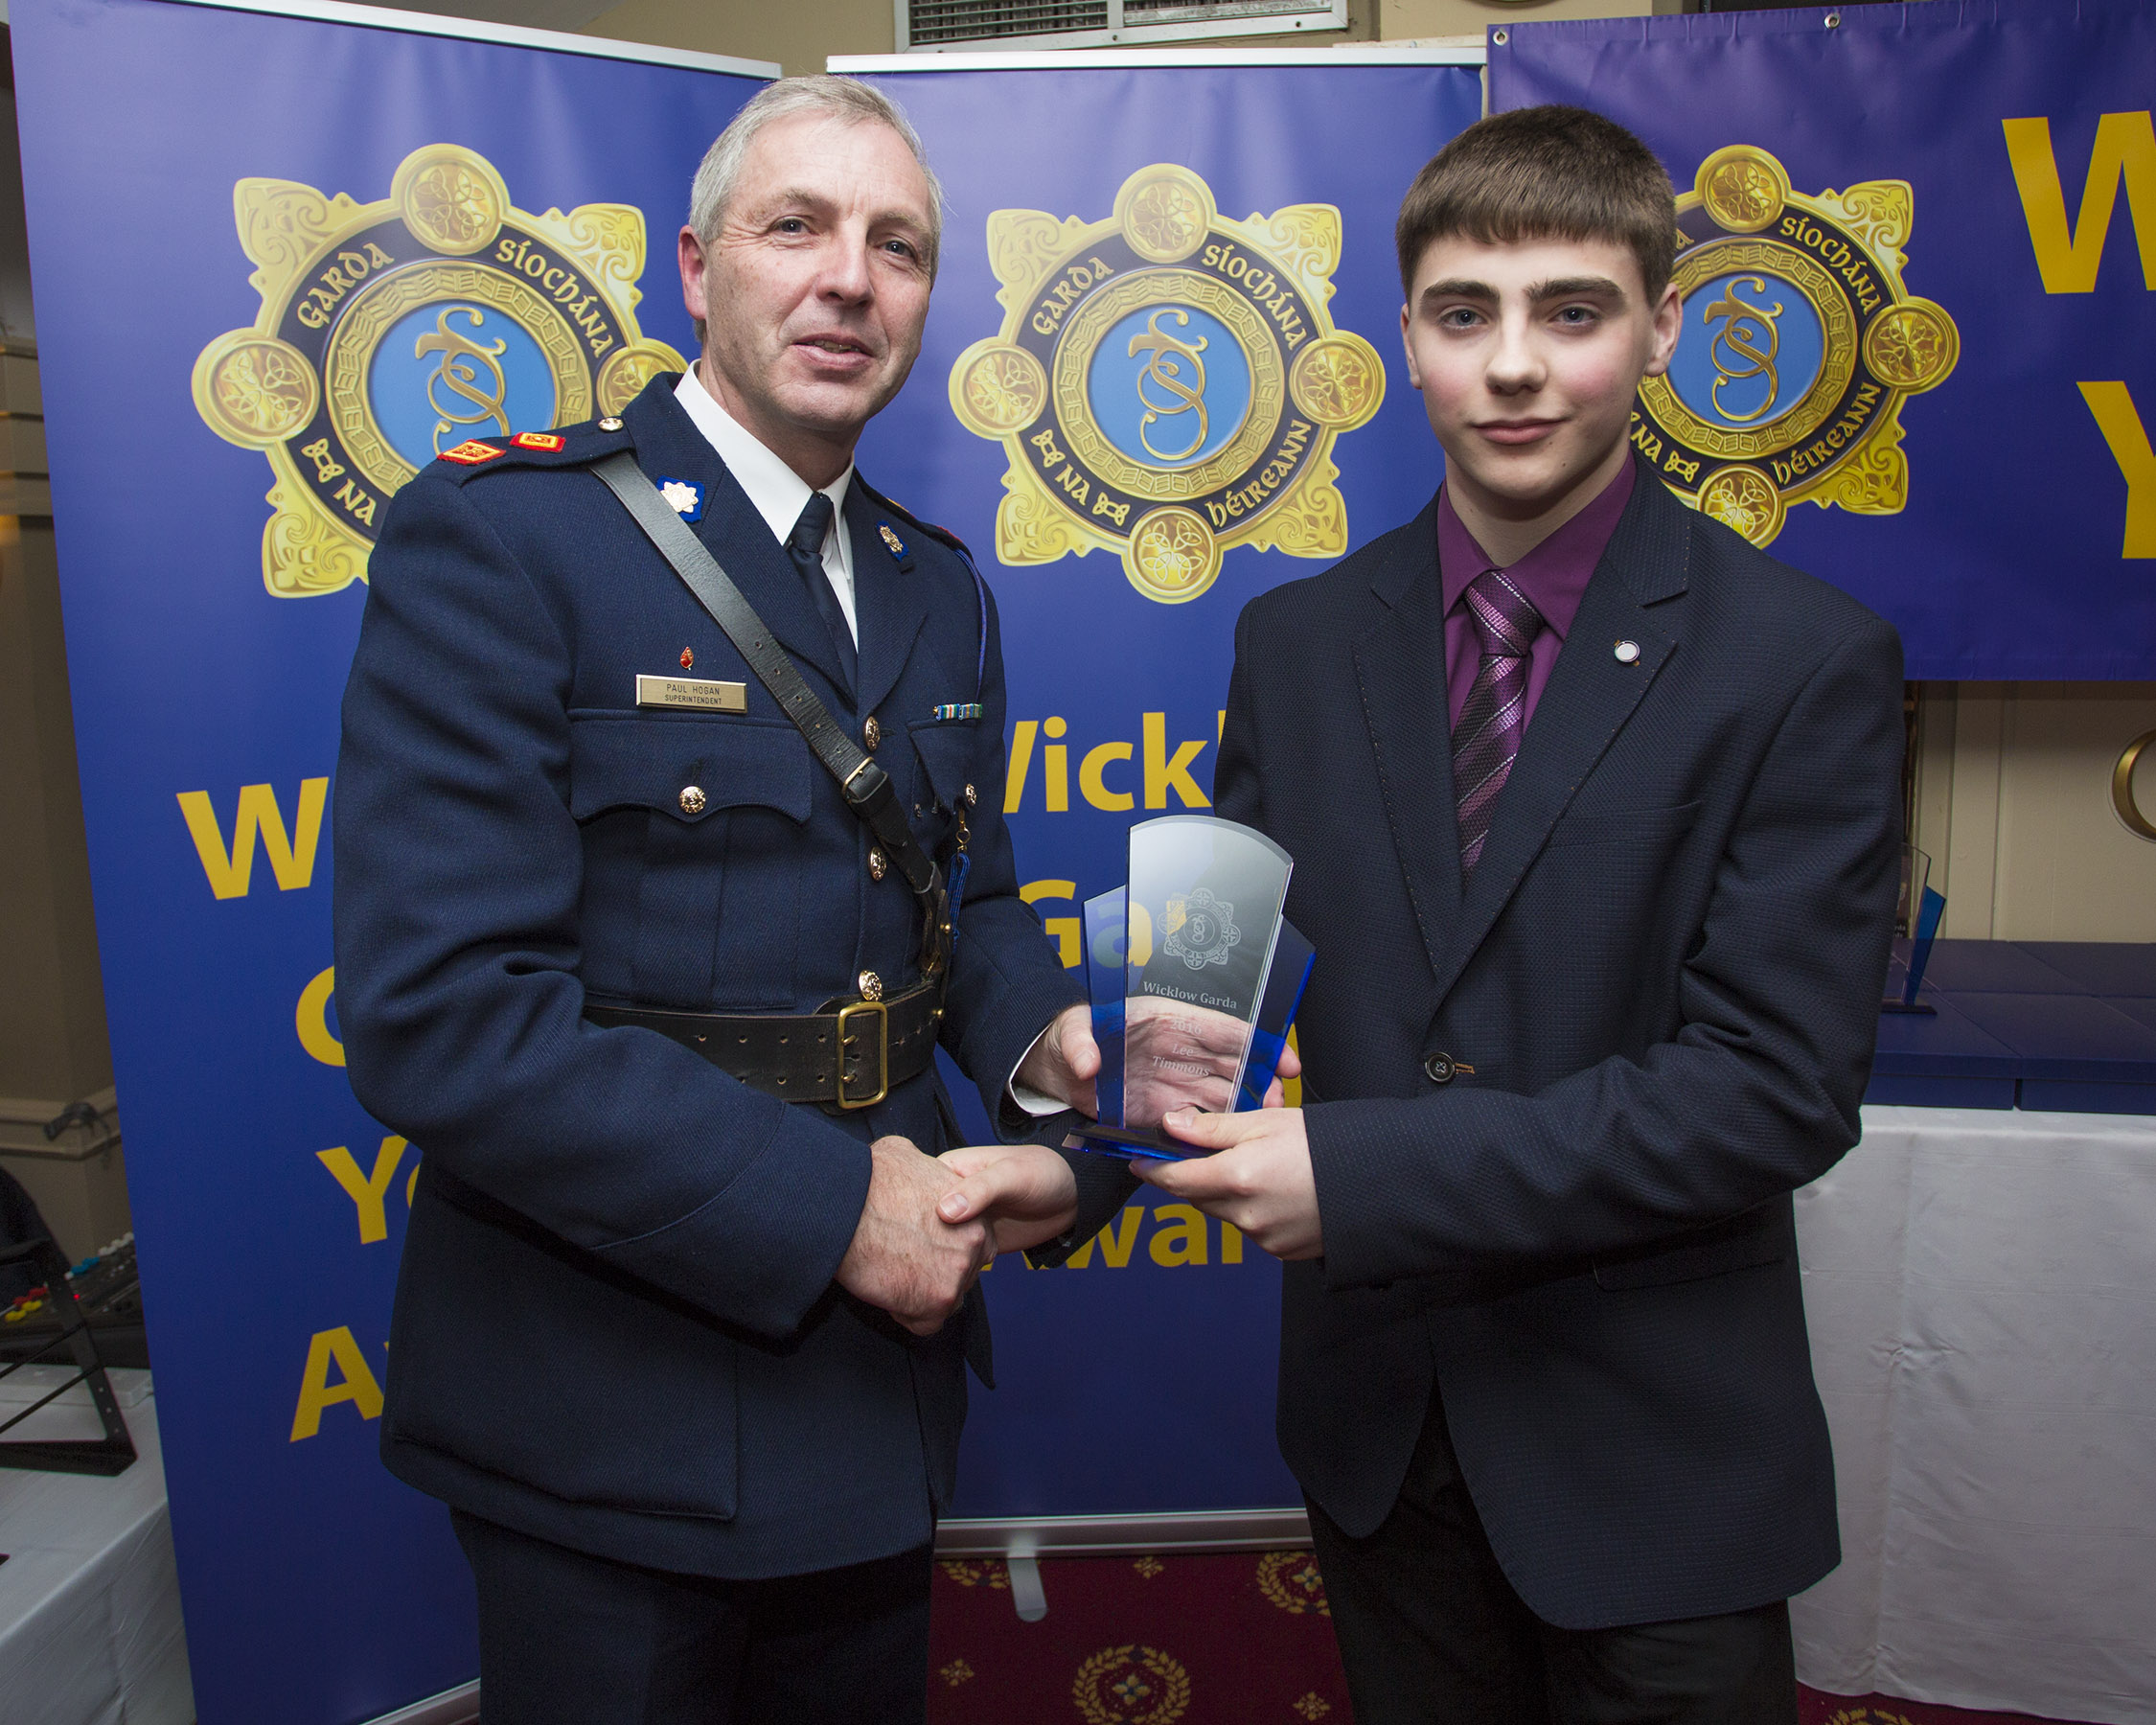 Lee Timmons from Roundwood recieves his youth award from Superintendant Paul Hogan at the 2nd Annual Wicklow Garda Youth Awards which was held in the Grand Hotel, Wicklow Town.